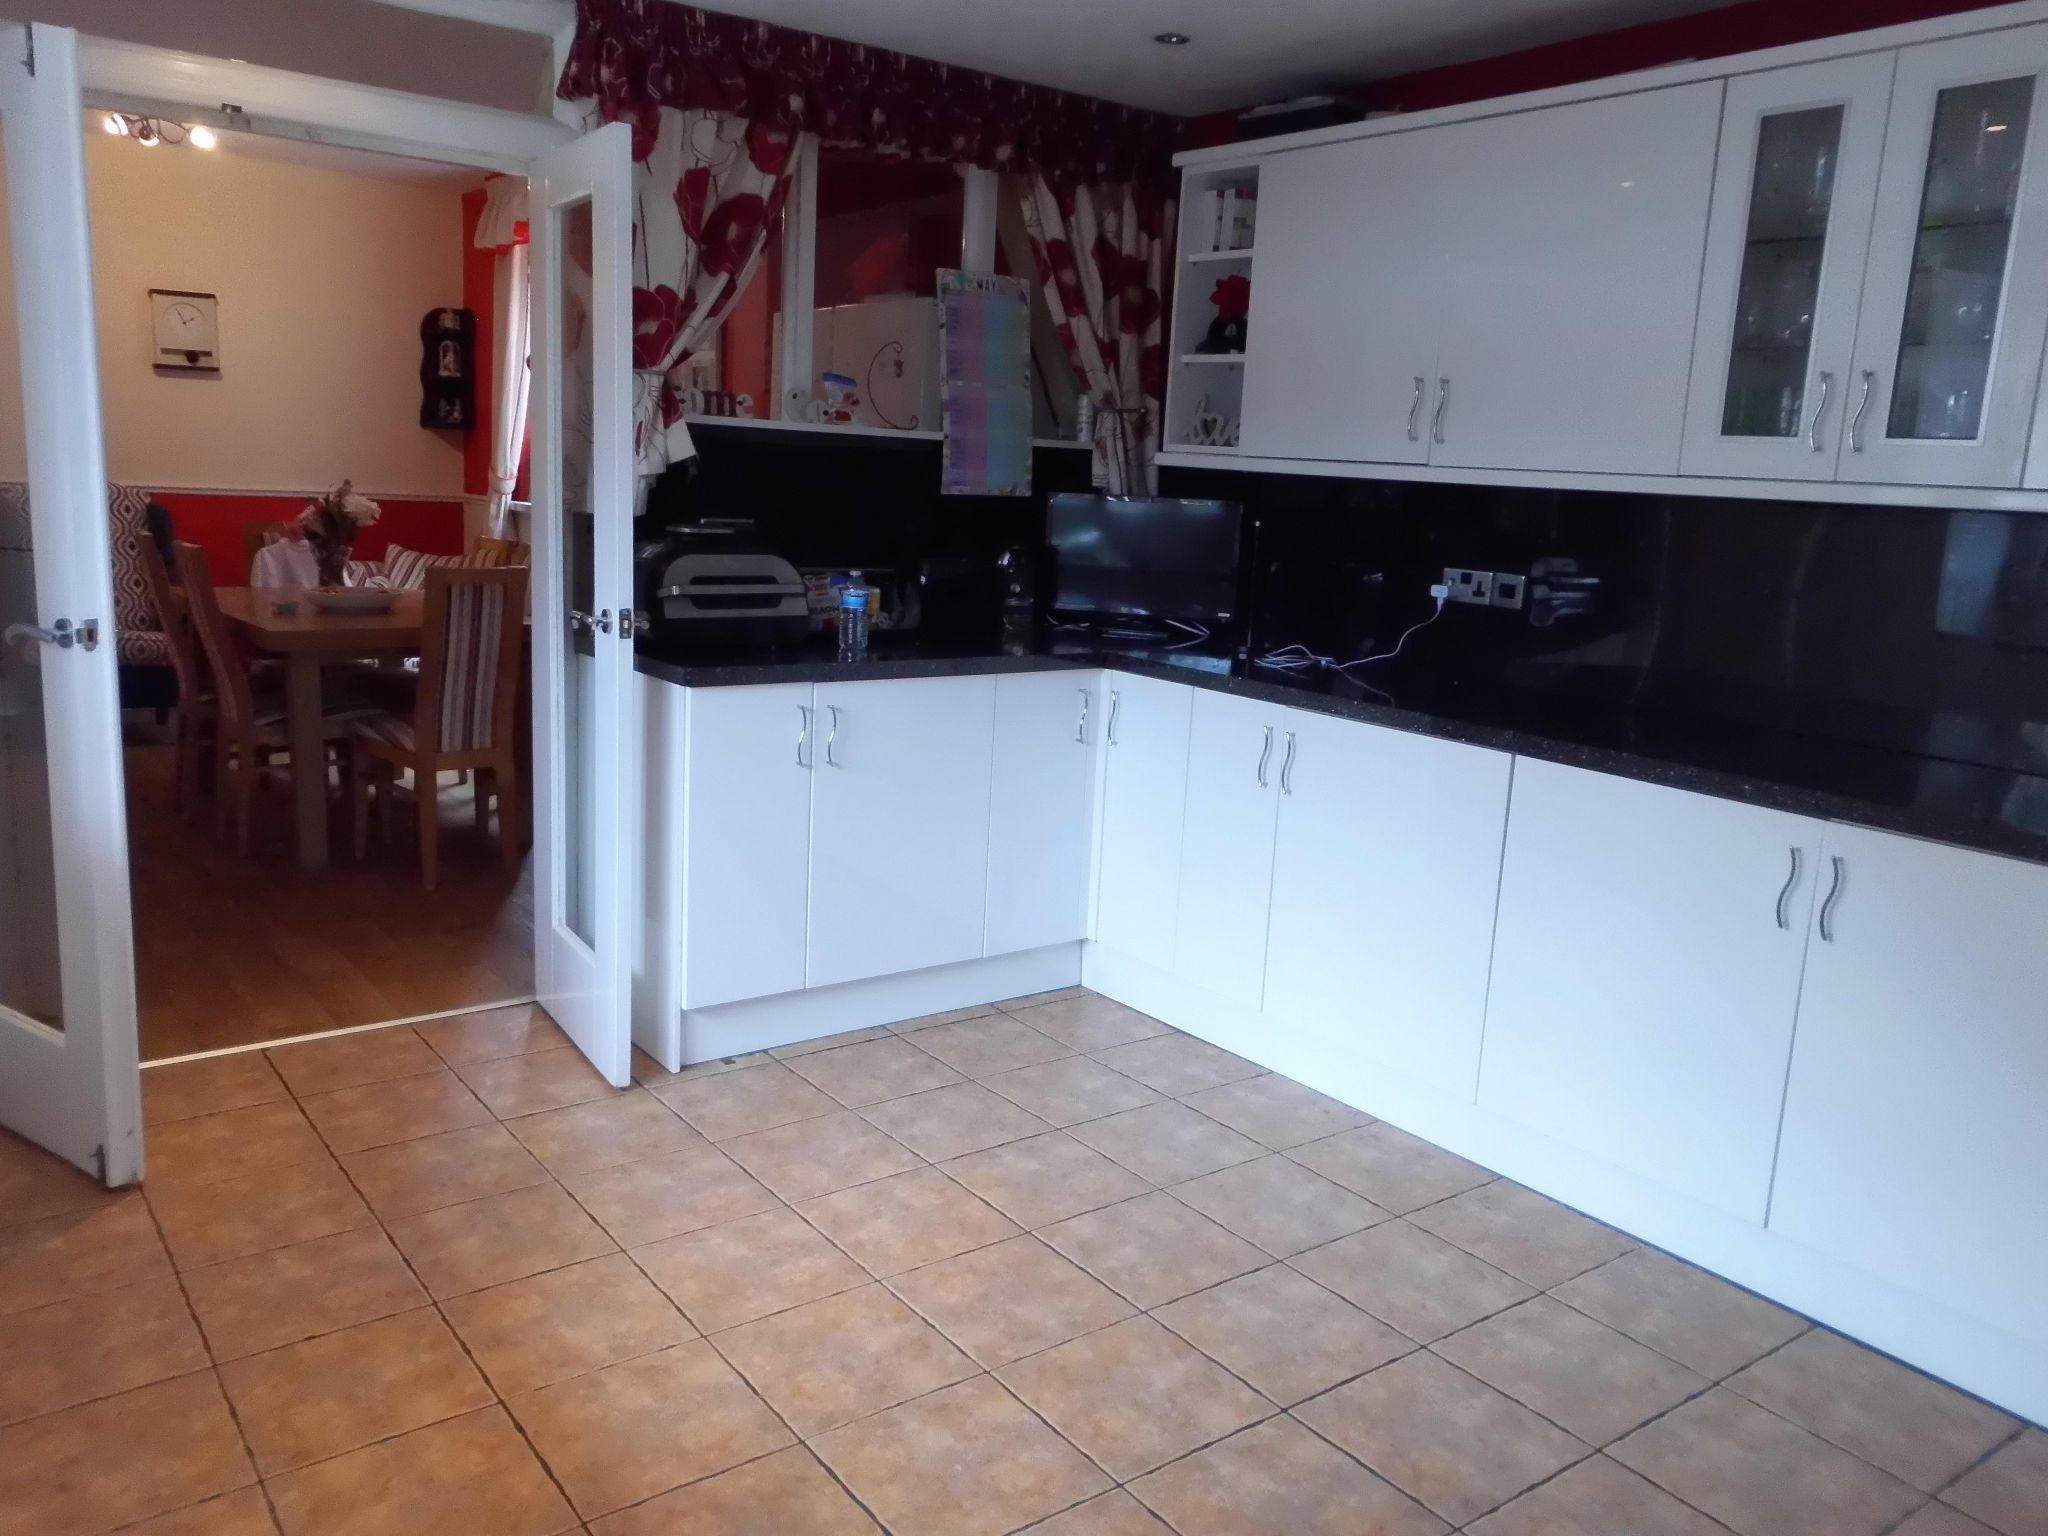 4 bedroom detached house For Sale in Leicester - Photograph 8.